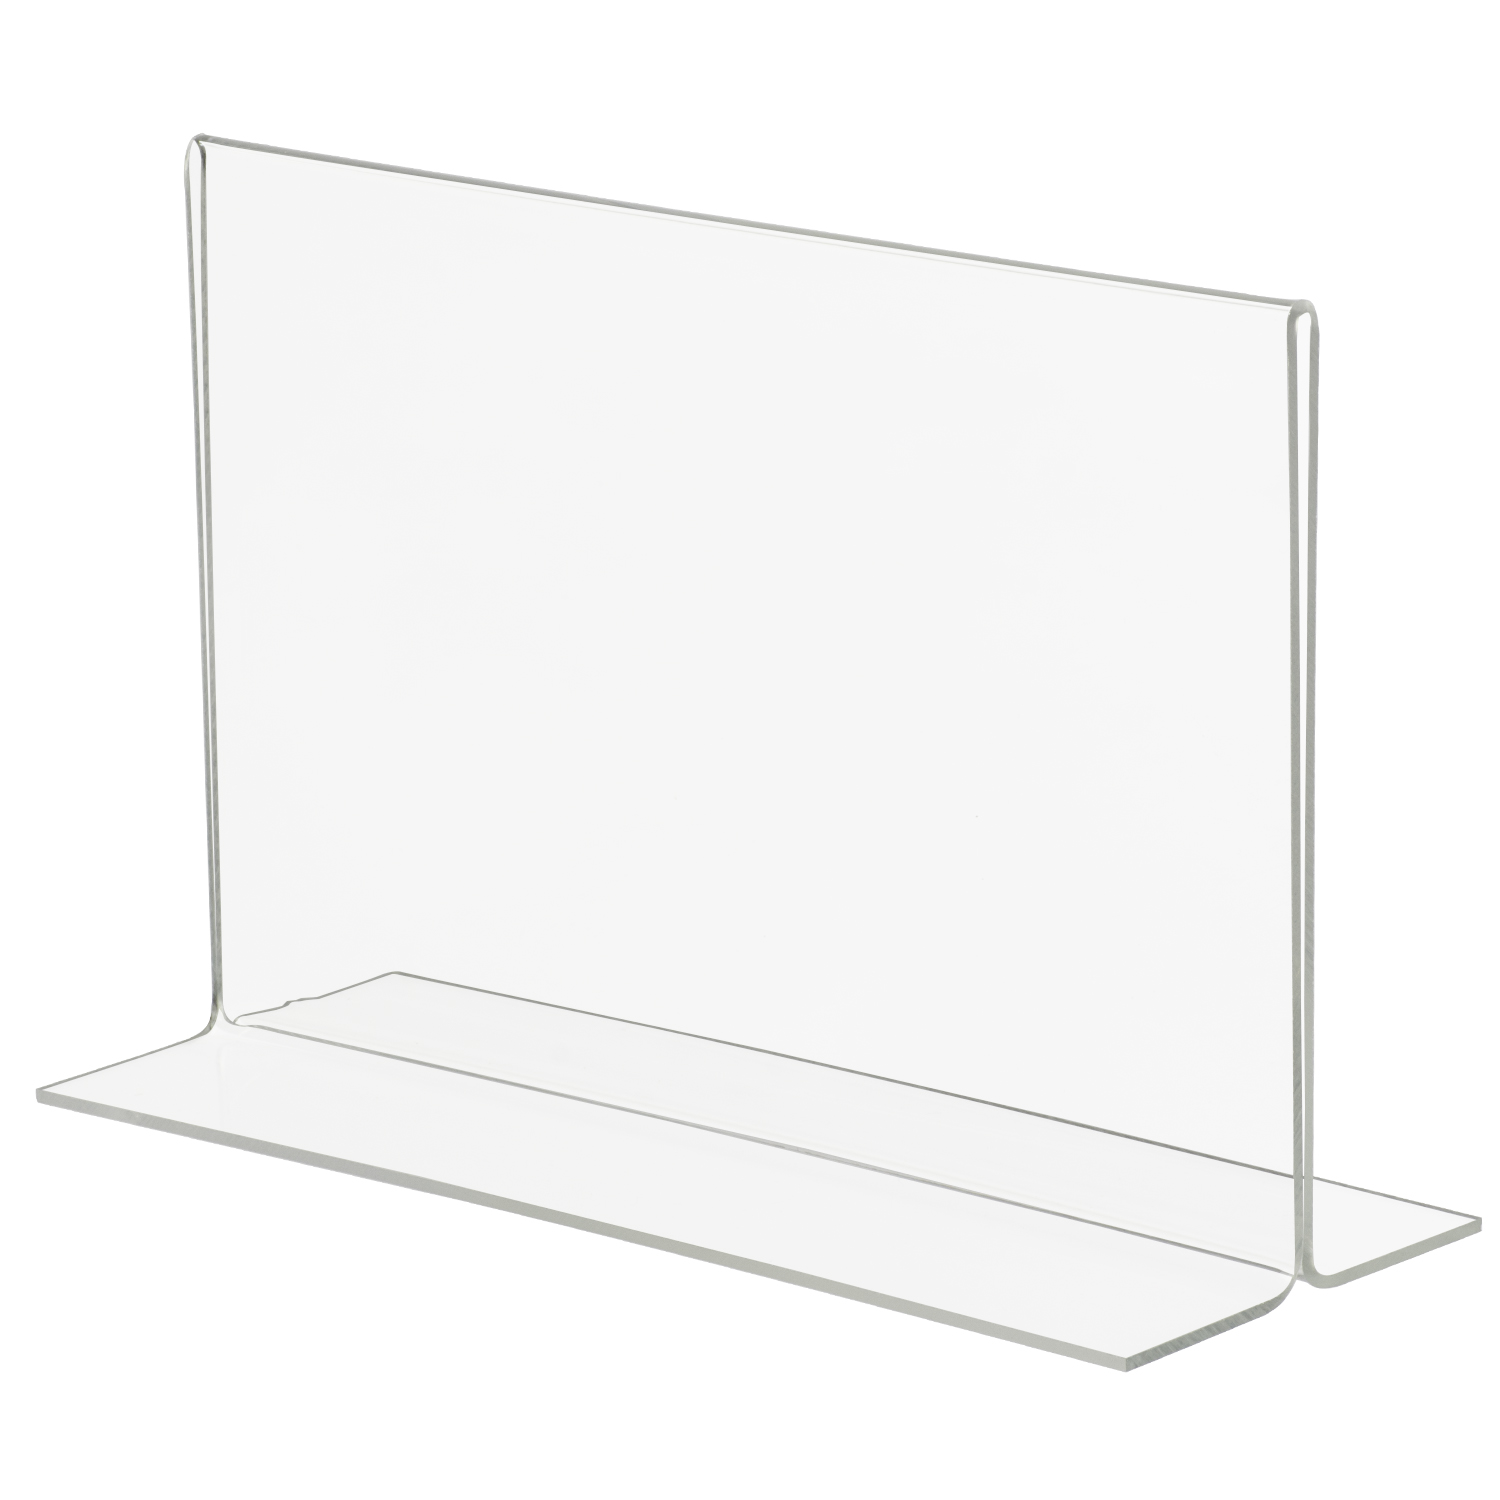 8 5x5 5 Bottom Loading Double Sided Acrylic Sign Holder